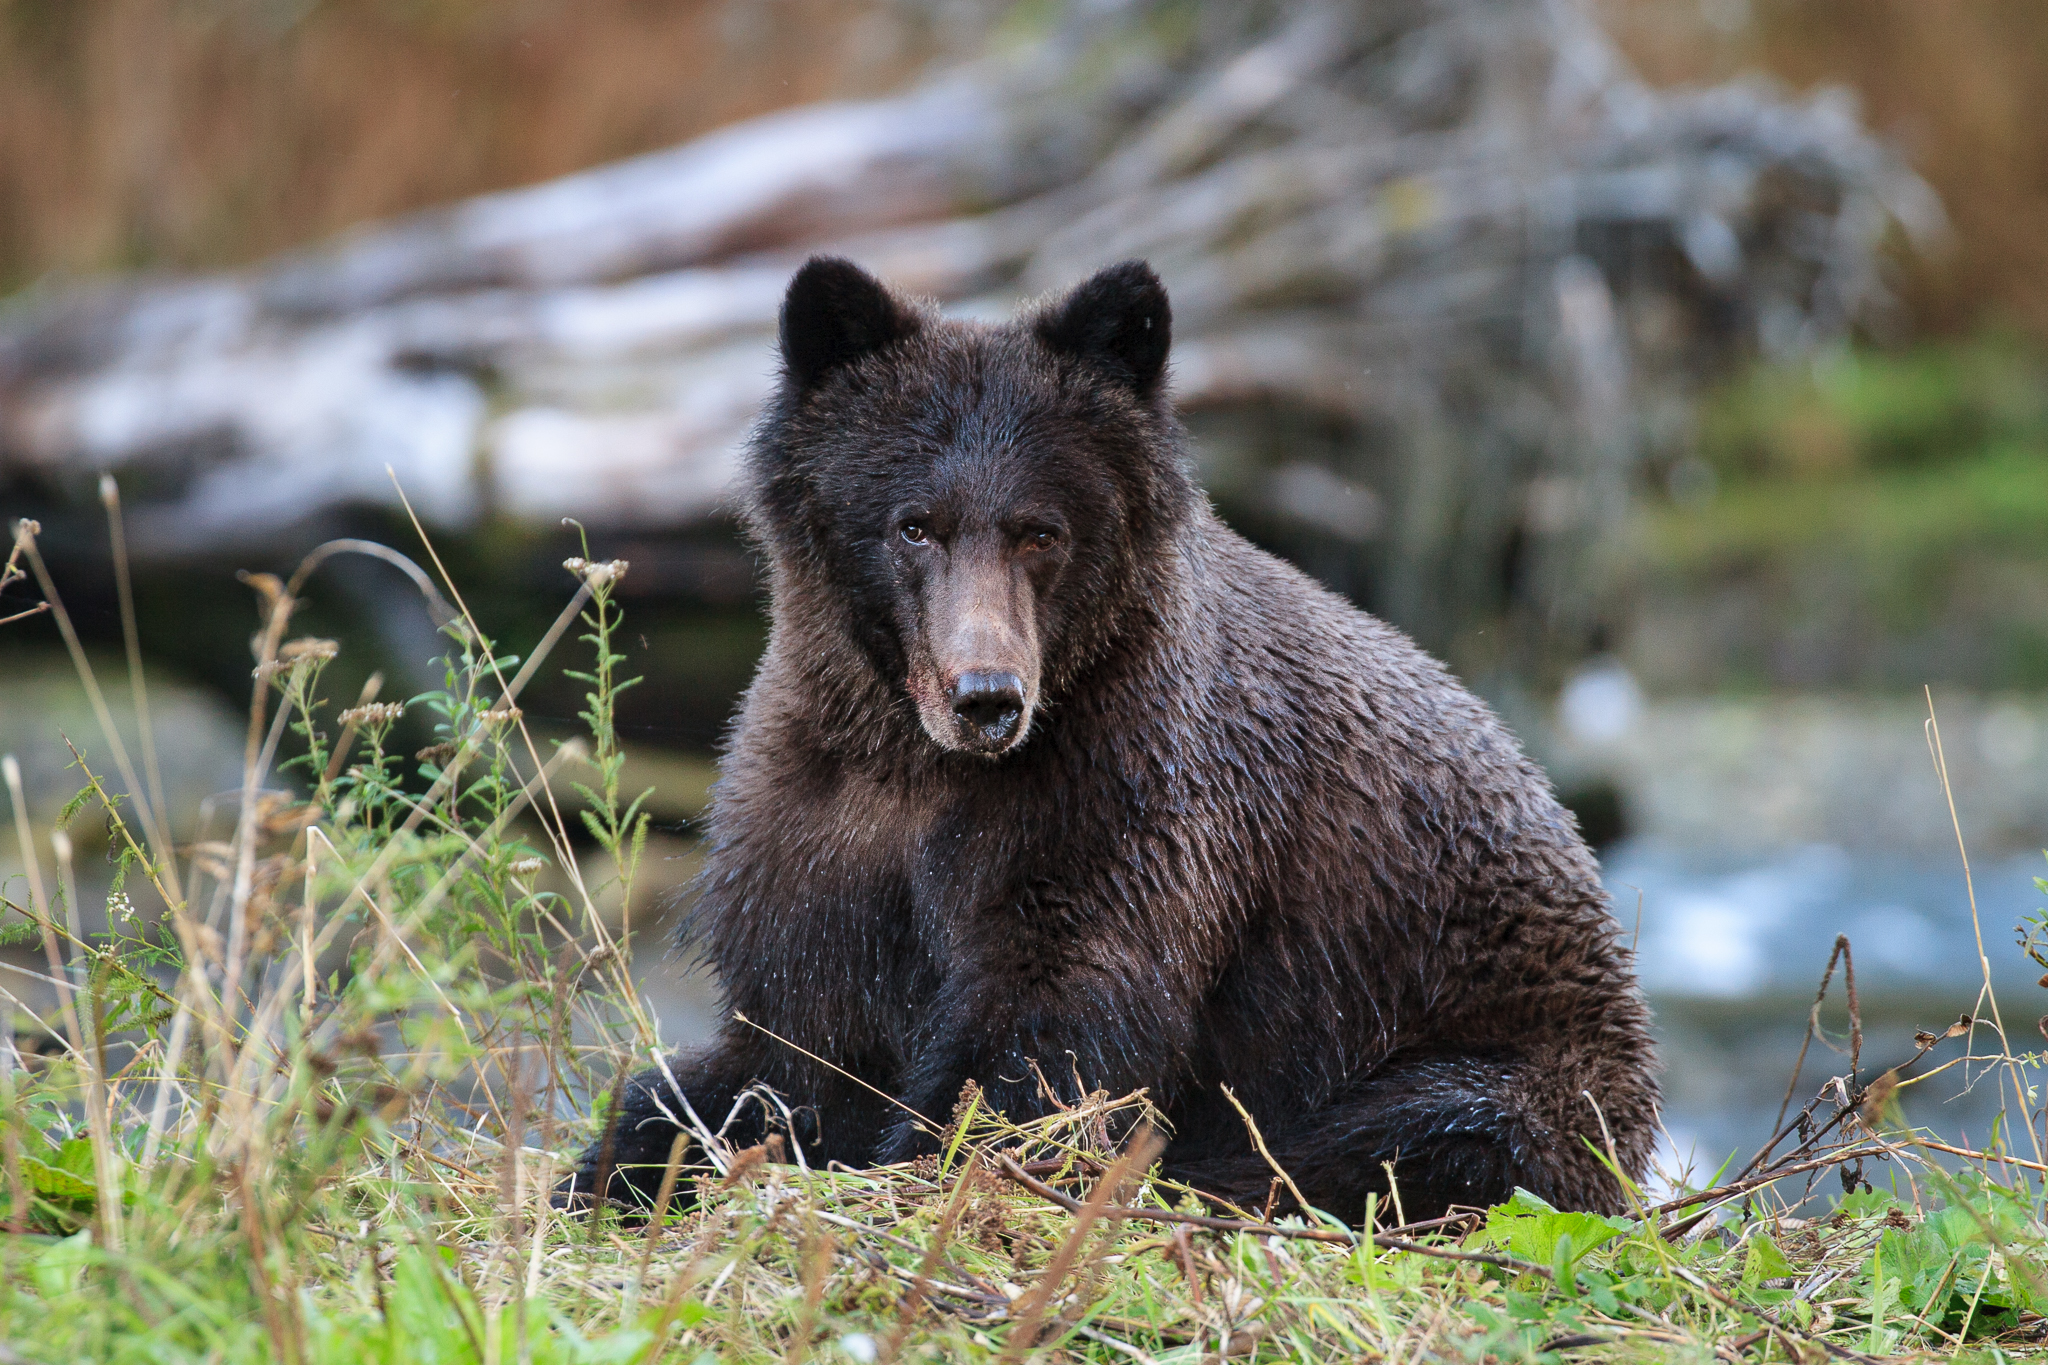 A juvenile grizzly enjoys the relative tranquility in Great Bear's Fjordland Conservancy, where the Raincoast Conservation Society and First Nations governments have purchased and shelved the area's 20-year trophy-hunting permit.